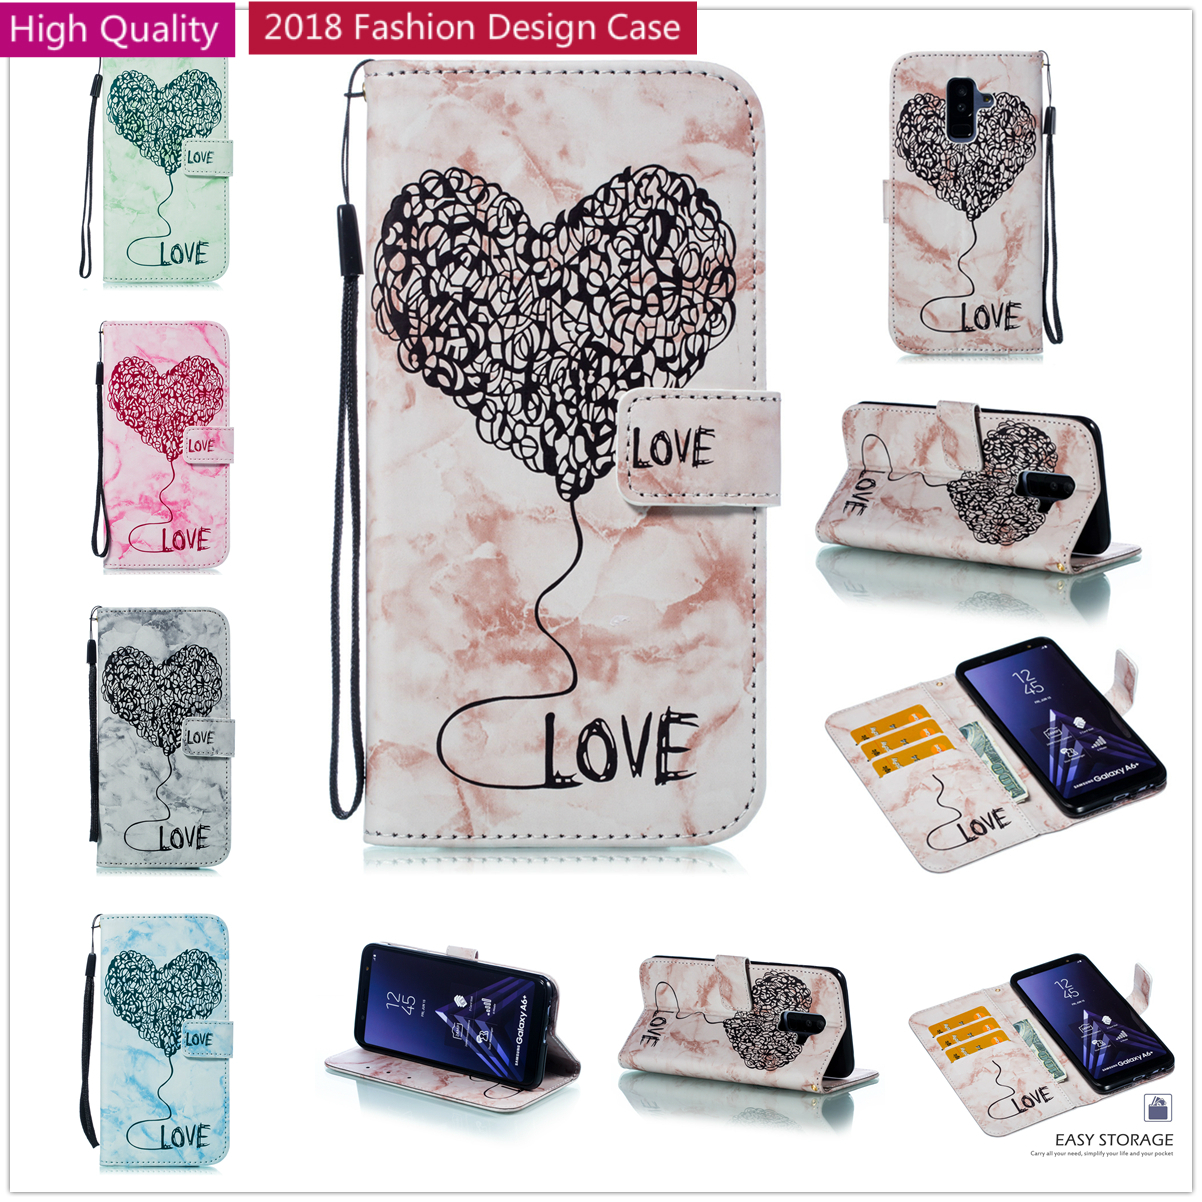 High Quality Leather Cover For Samsung A6 A8 Plus 2018 Phone Case Love Heart Flip Book Fundas For Samsun A5 A3 2017 2016 Coque